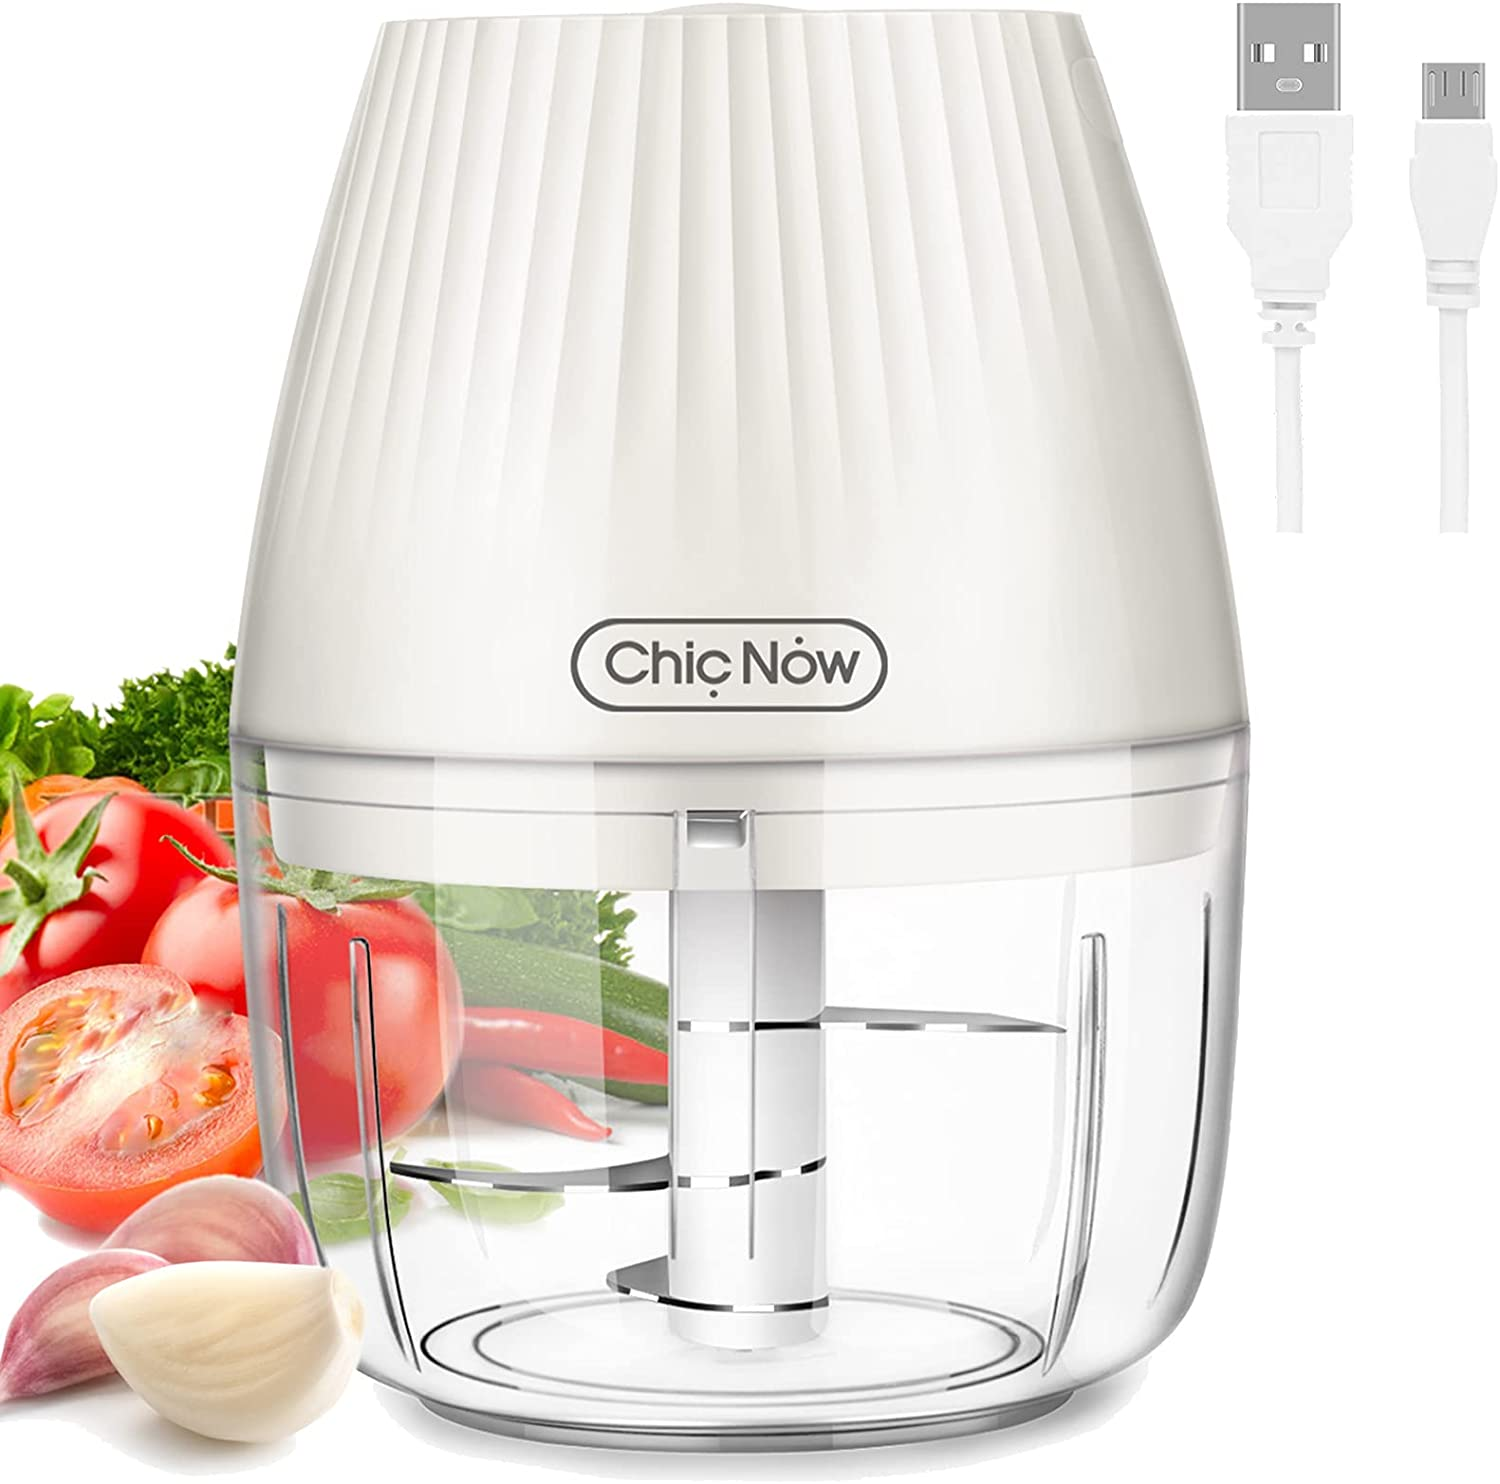 Electric Mini Chopper Wireless CHIC NOW Food Processor with USB Interface, 250ml Bowl 3 S-Shaped Stainless Steel Blades, Chop Vegetables, Meet, Garlic, Spices for Kitchen, Traveling, RV, etc.